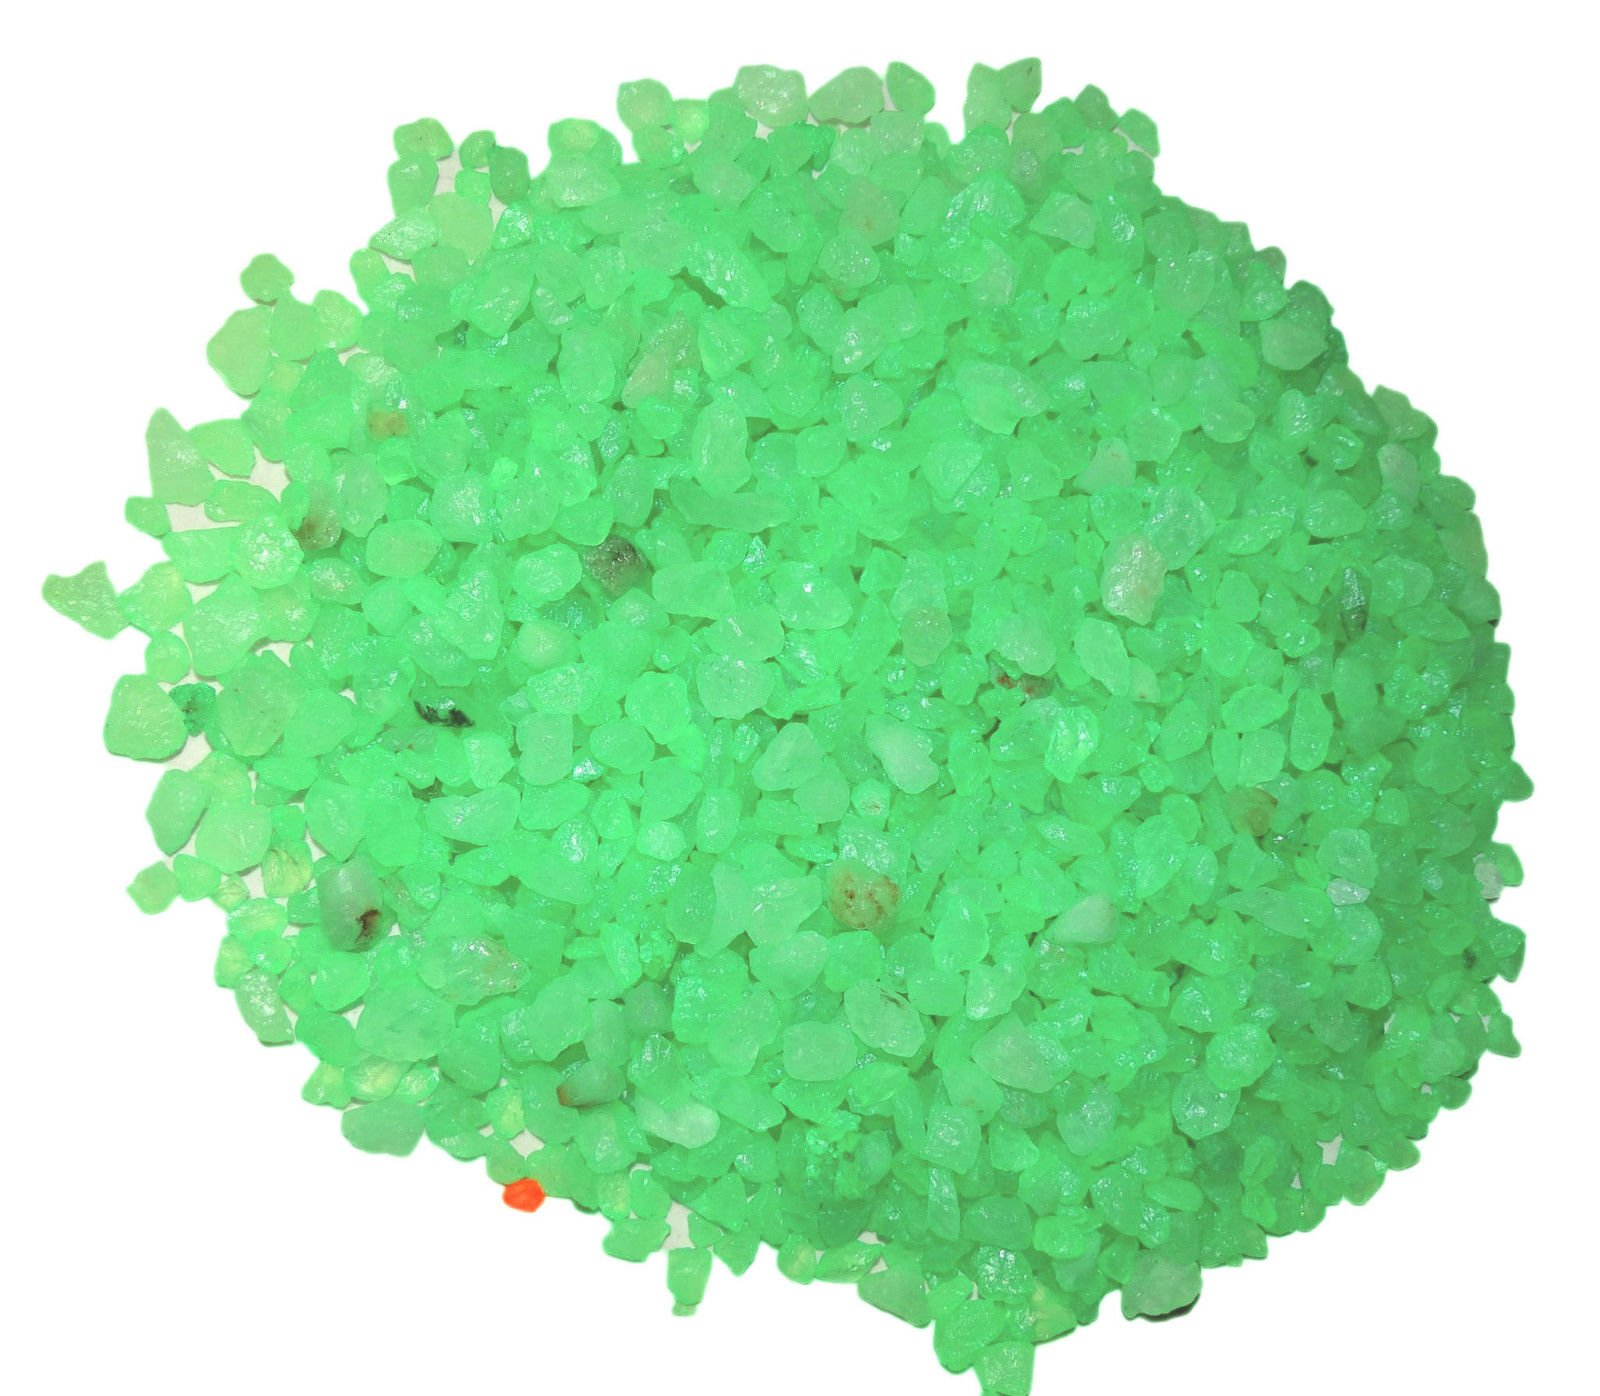 1kg Dyed Green Florocent Gravel B Size Pebbles for Garden Decor Plant Home Decor Backyard Patio Pathway Indoor and Outdoor Gravel Soil Stone Pebbles Chips Decoration Fish Tank Substrate (B06XZ985JY) Amazon Price History, Amazon Price Tracker